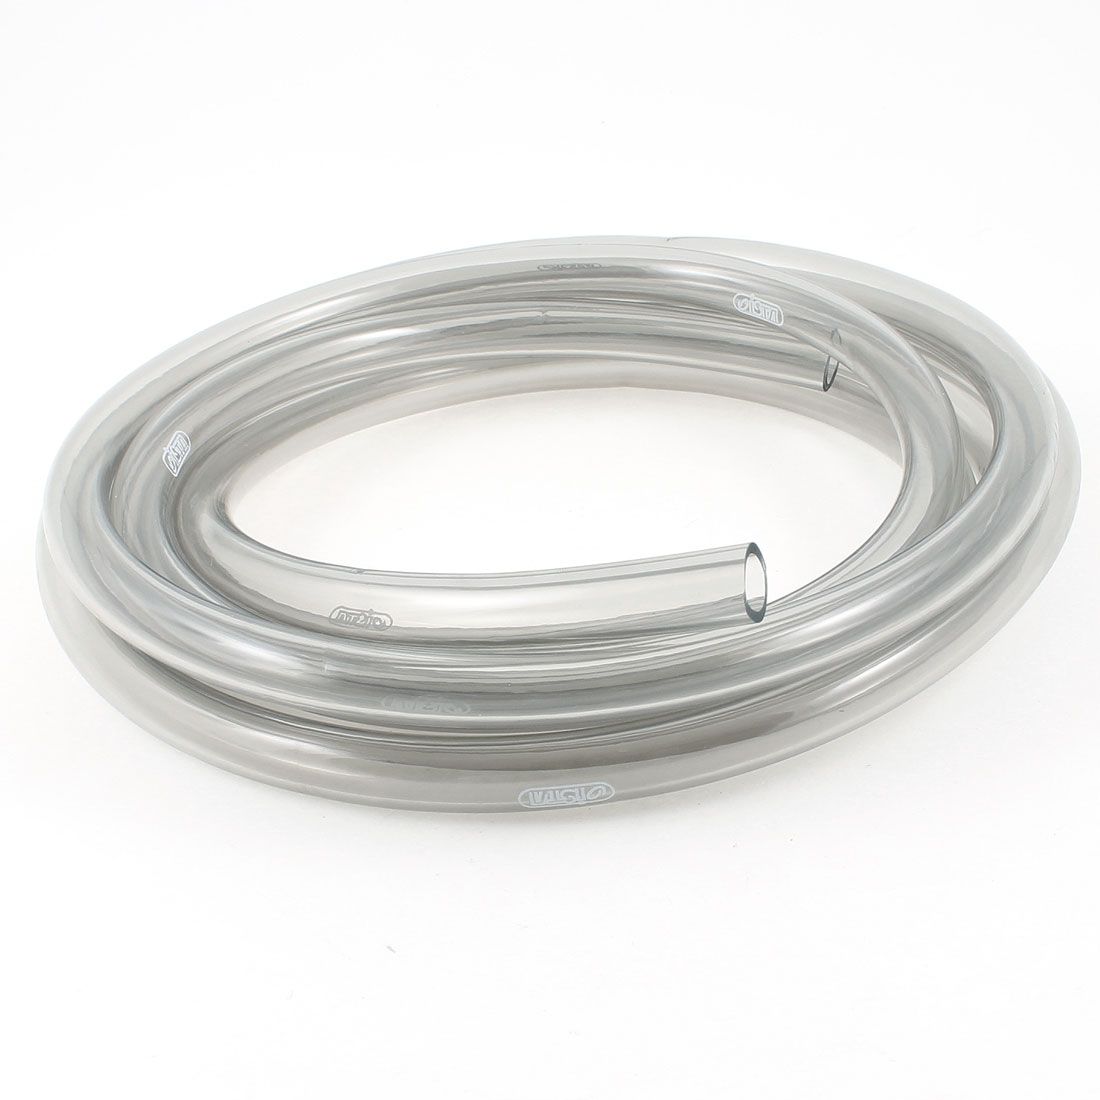 Flexible Air Oxygen Circulate Pipe Clear Gray 3.0 Meter for Fish Tank